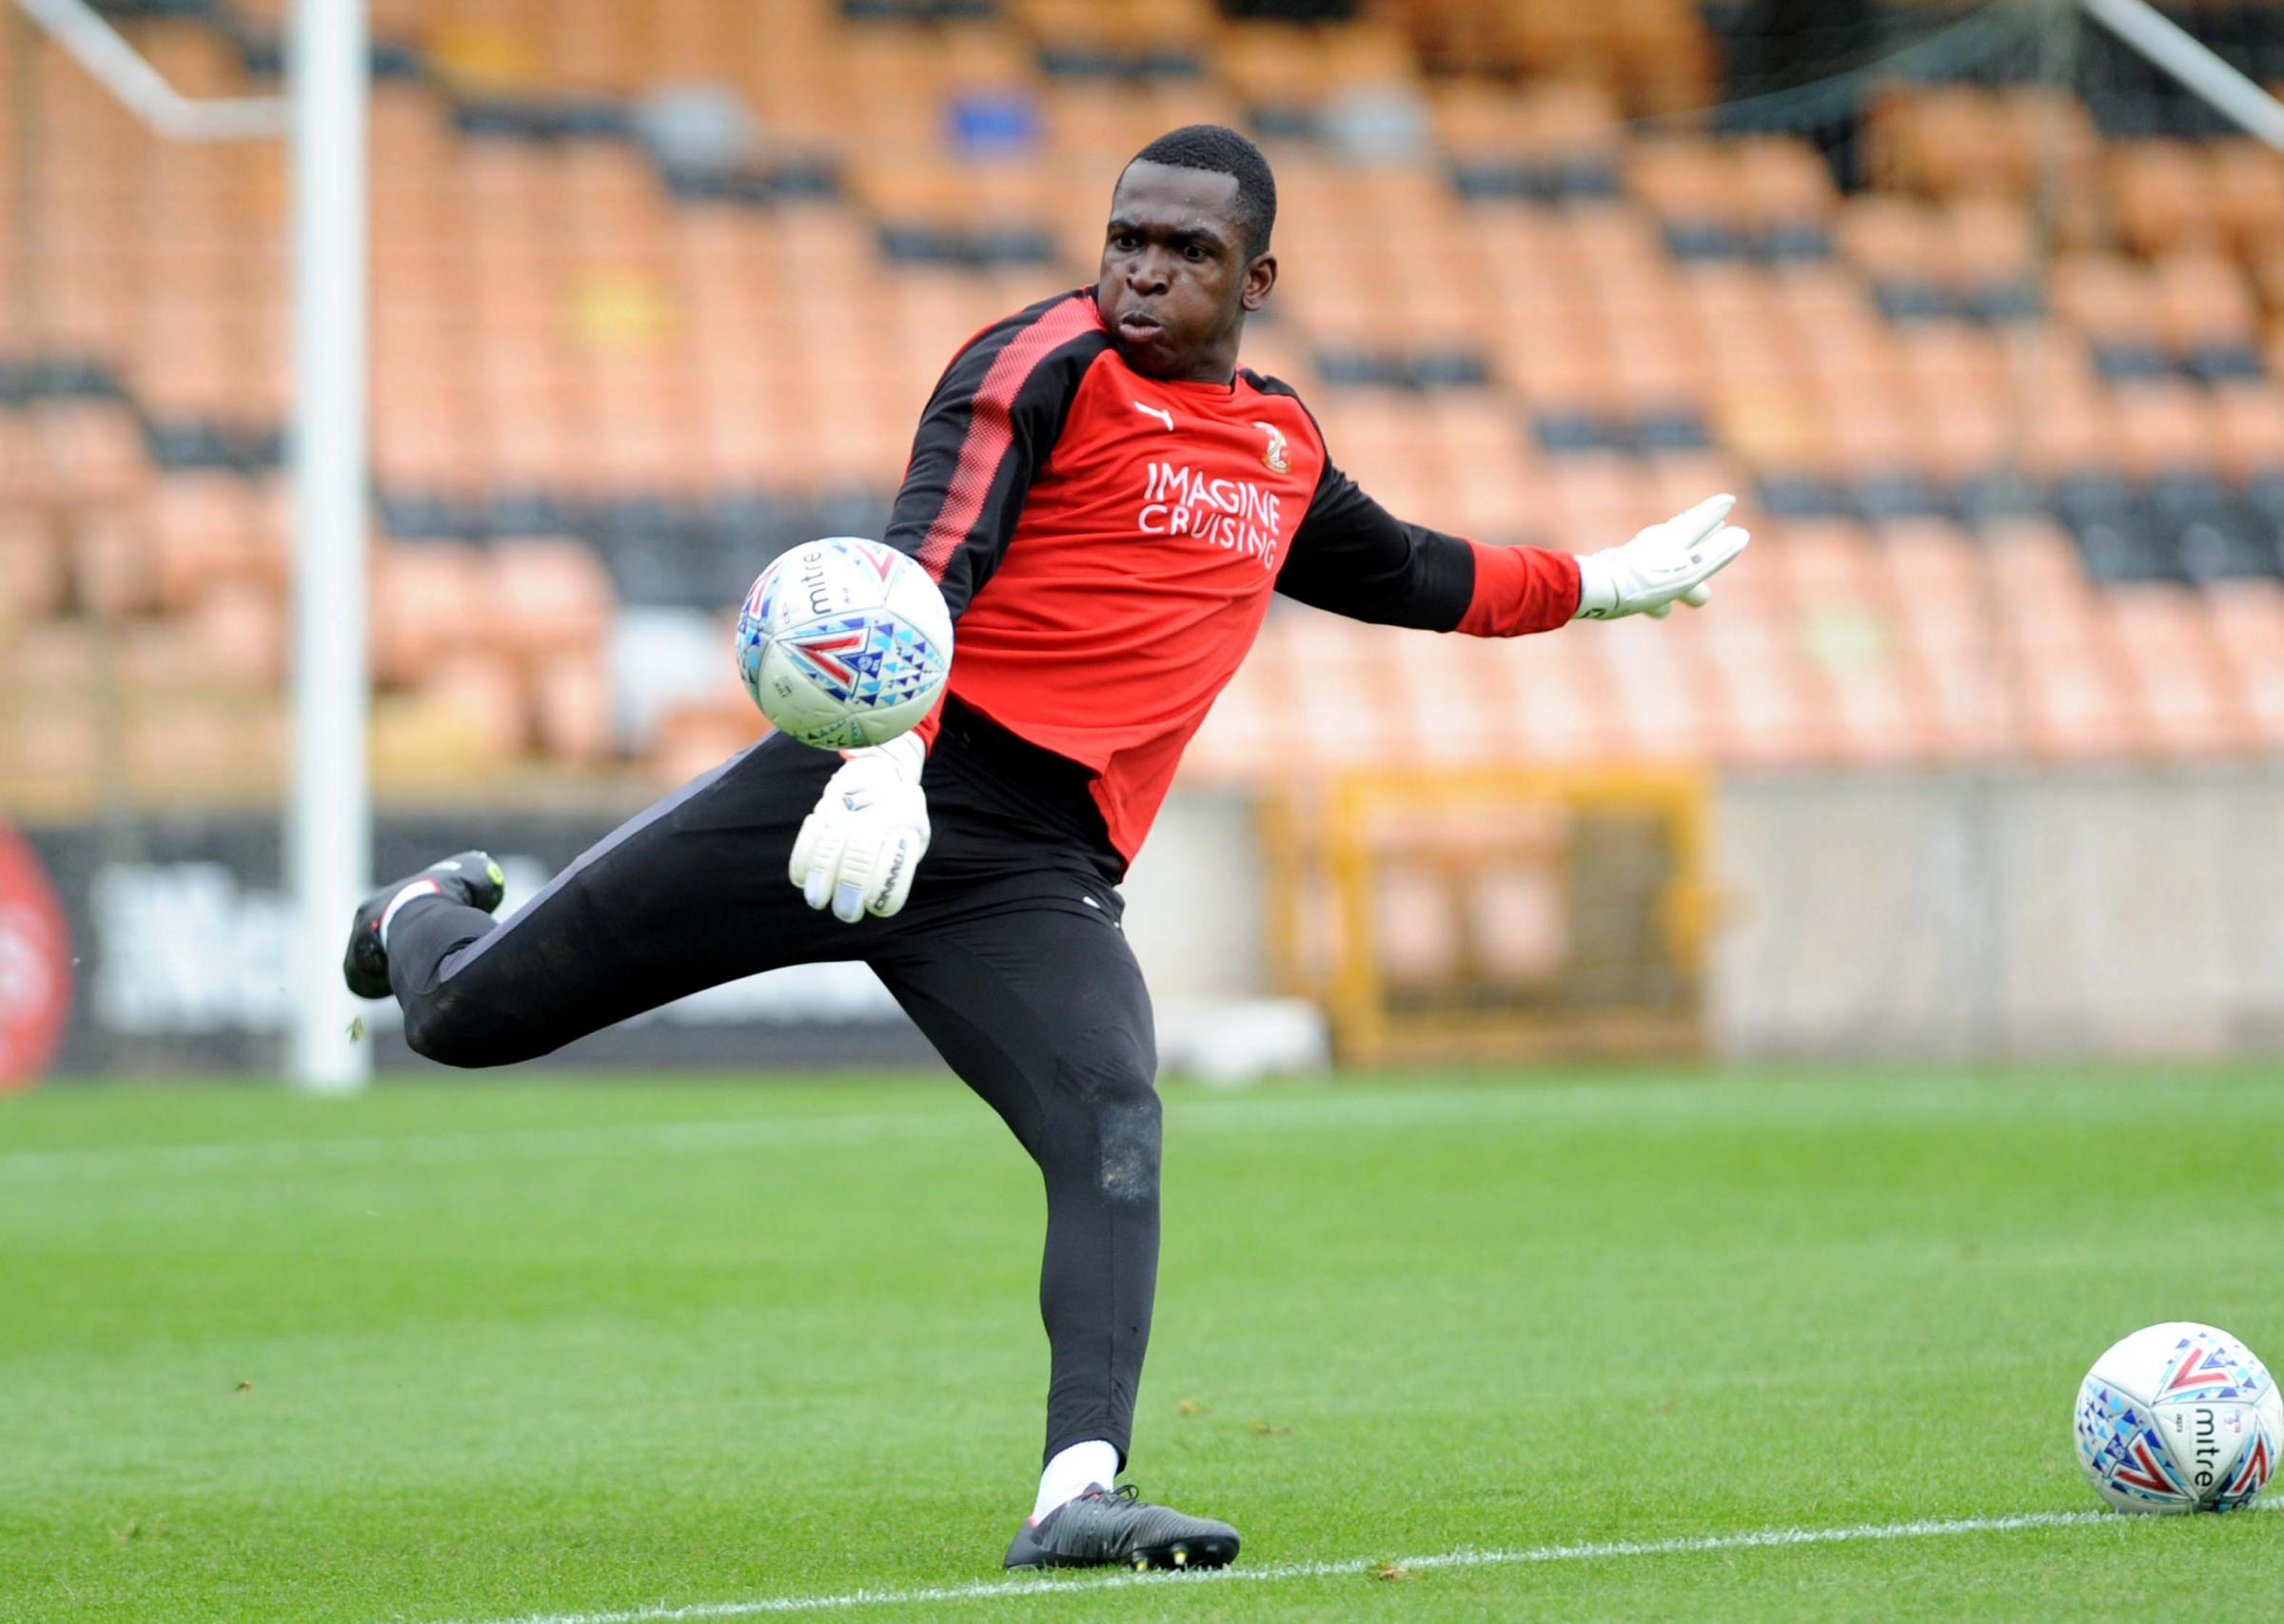 Former Town stopper Charles-Cook linked with Football League return